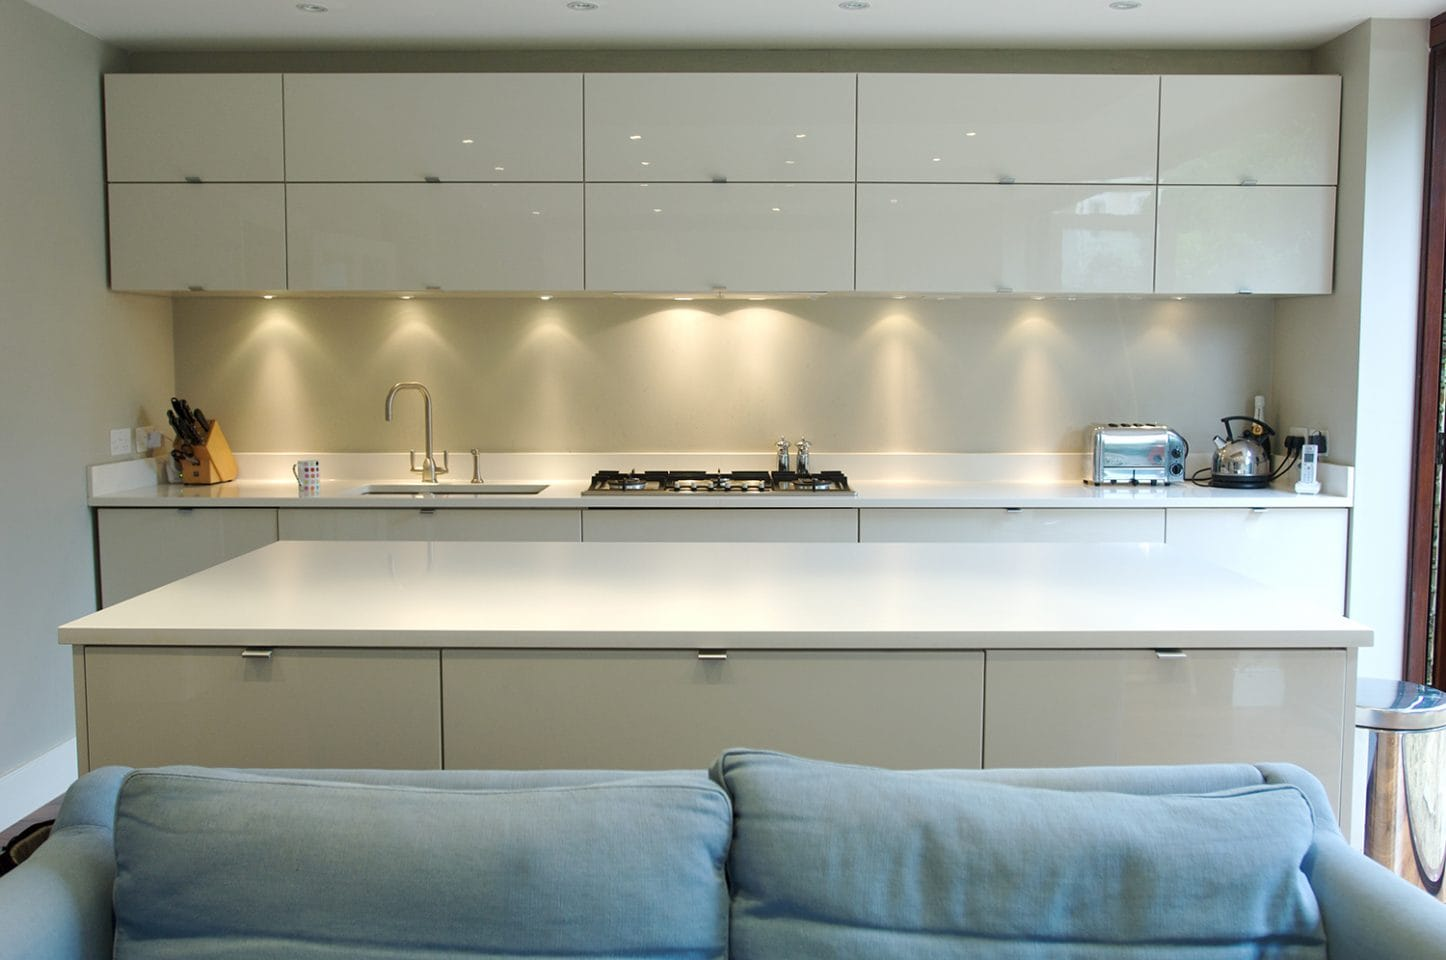 Kitchen and appliance fitting service in London